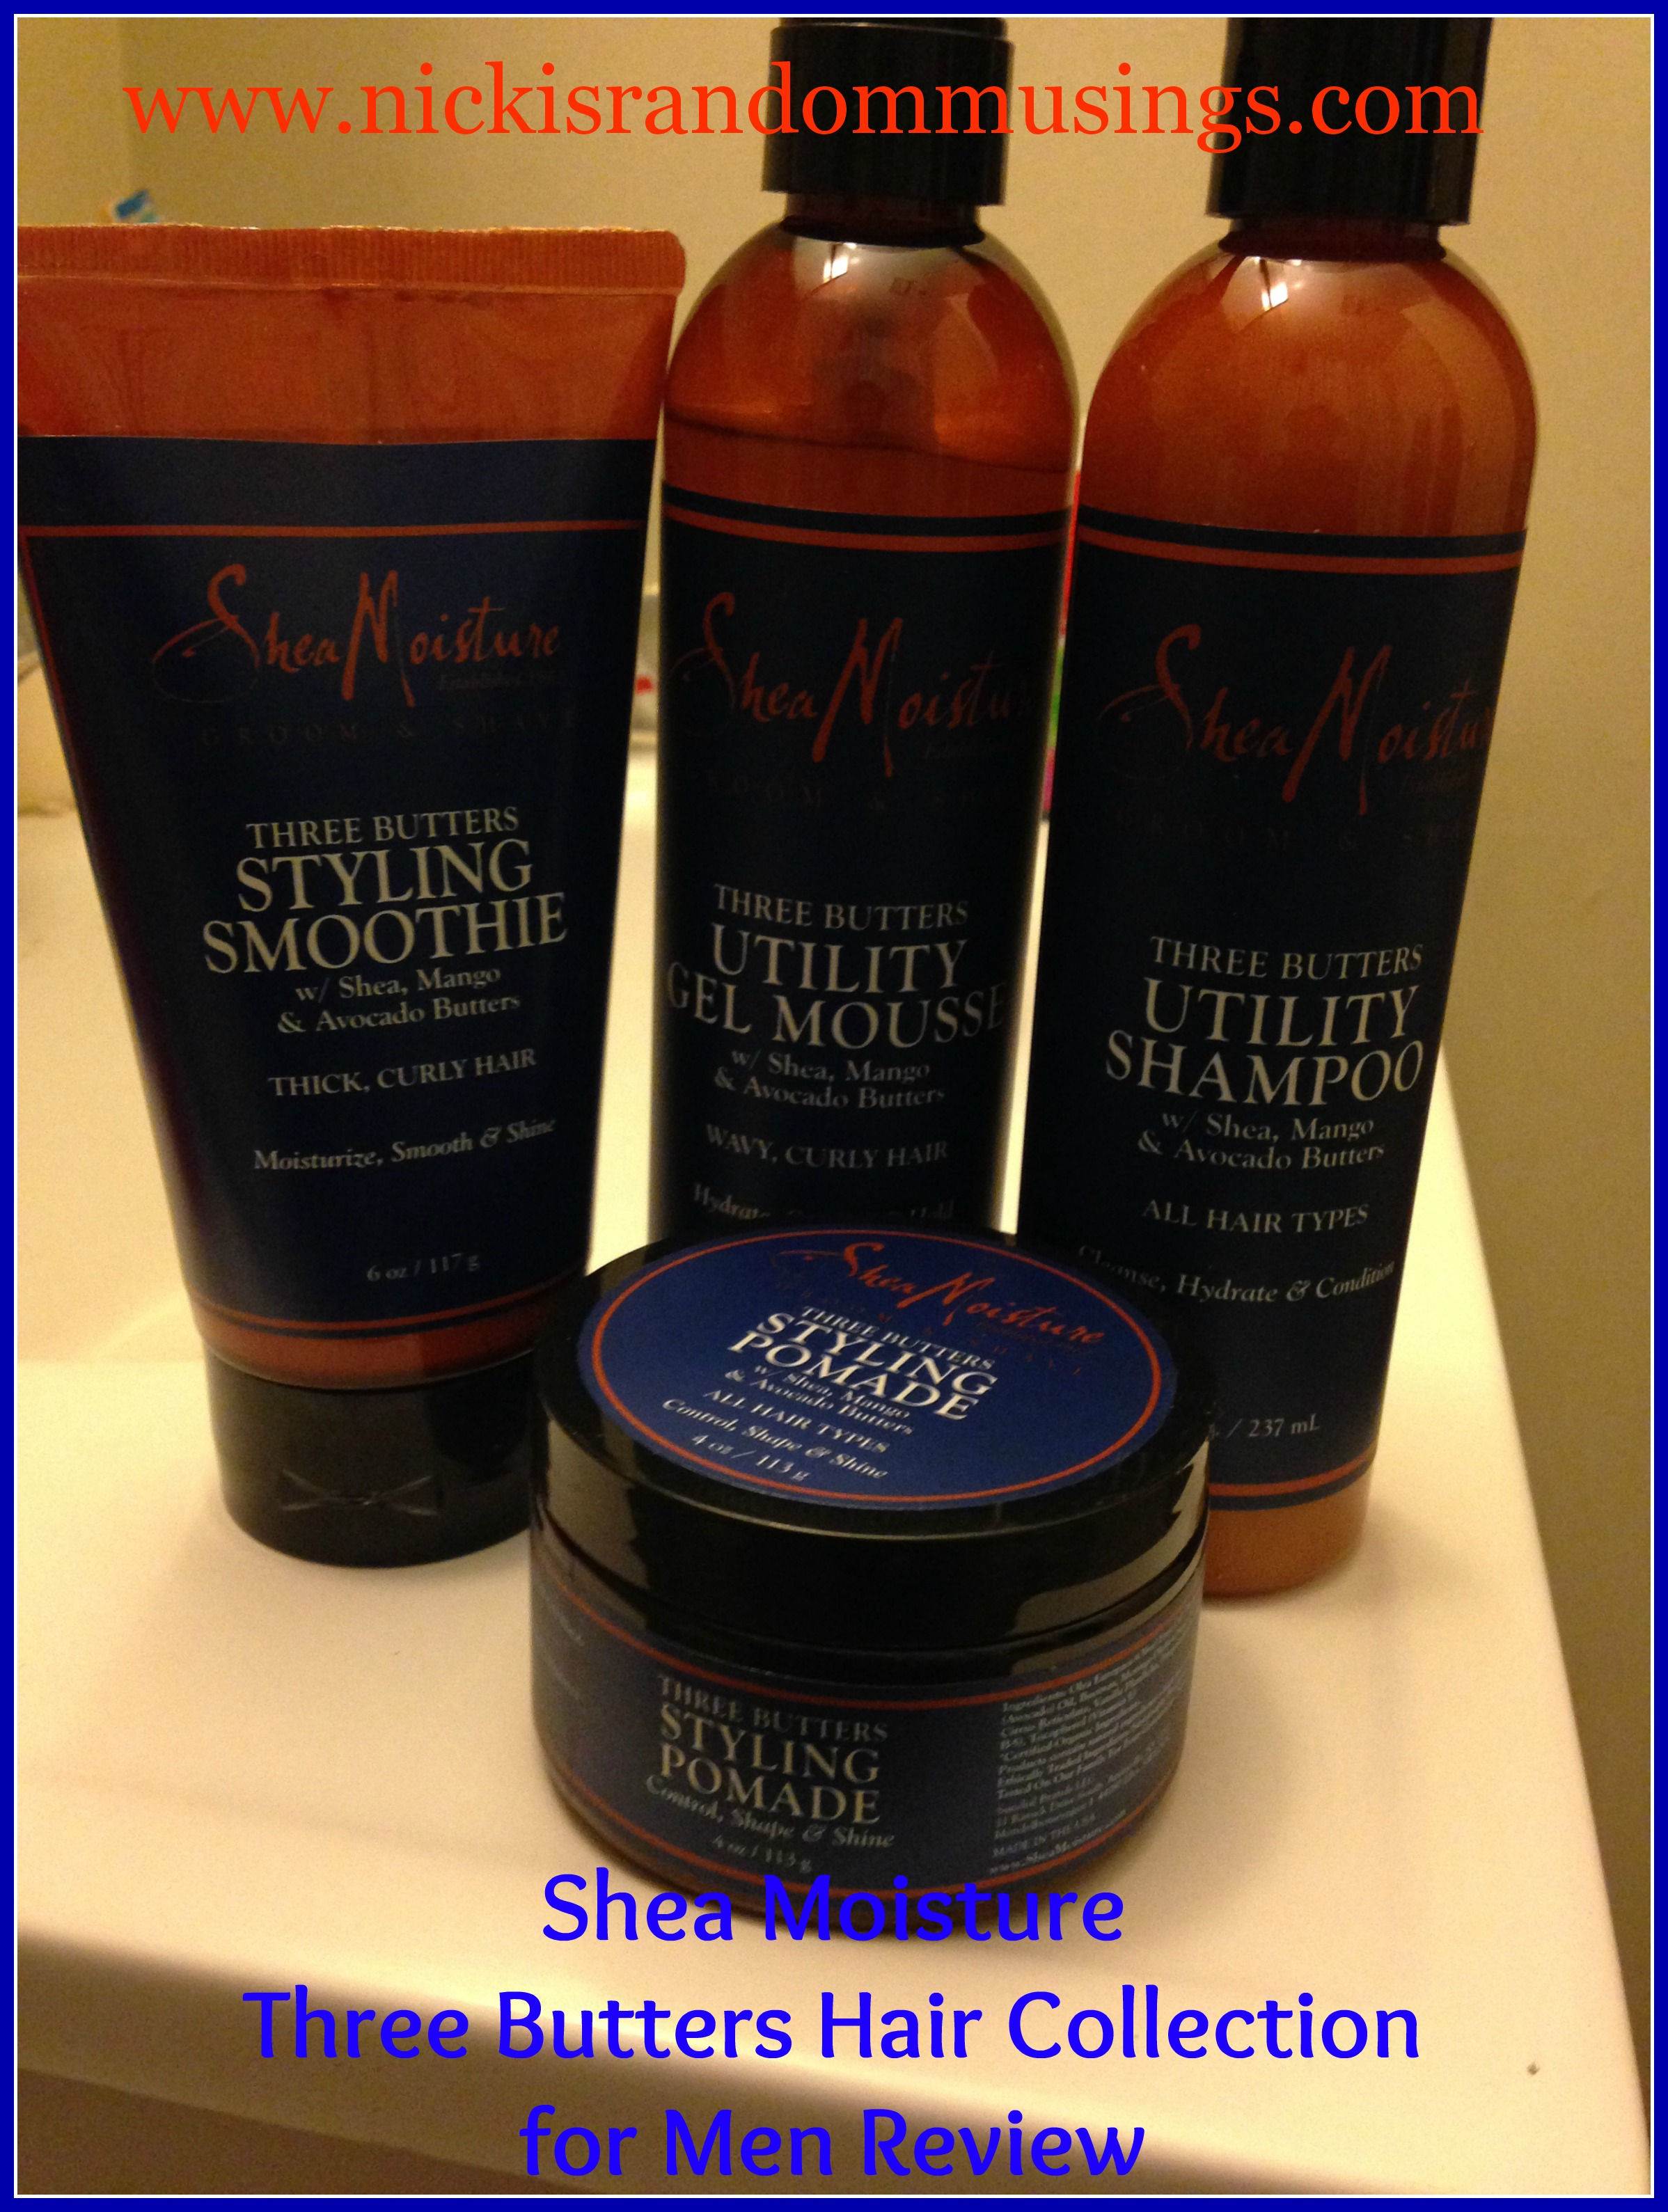 Shea moisture products for men